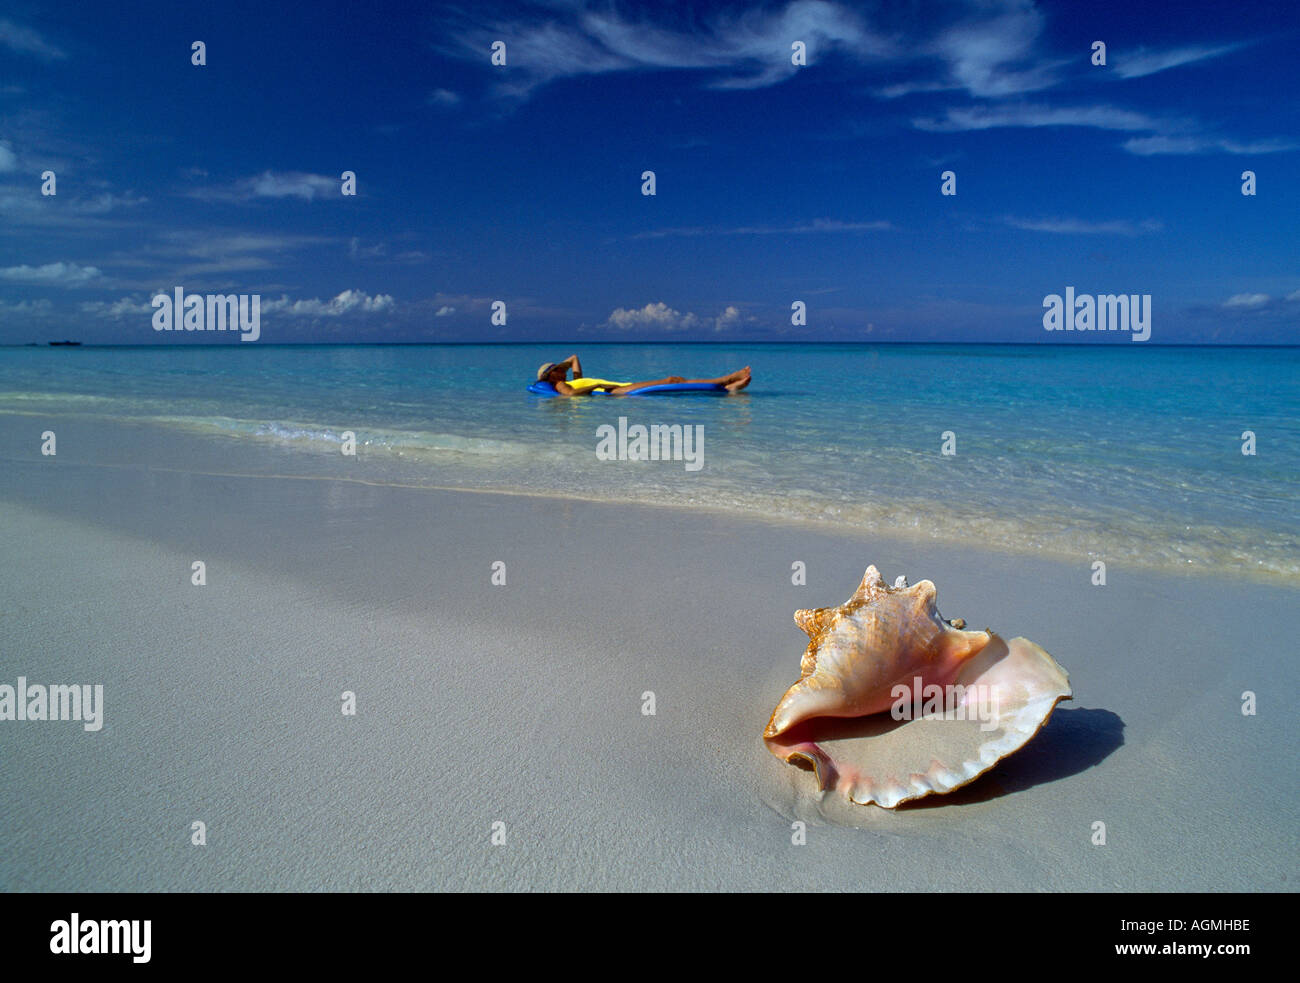 Grand Cayman 7 Mile Beach conch shell on sand girl on float swimmer in bkground - Stock Image